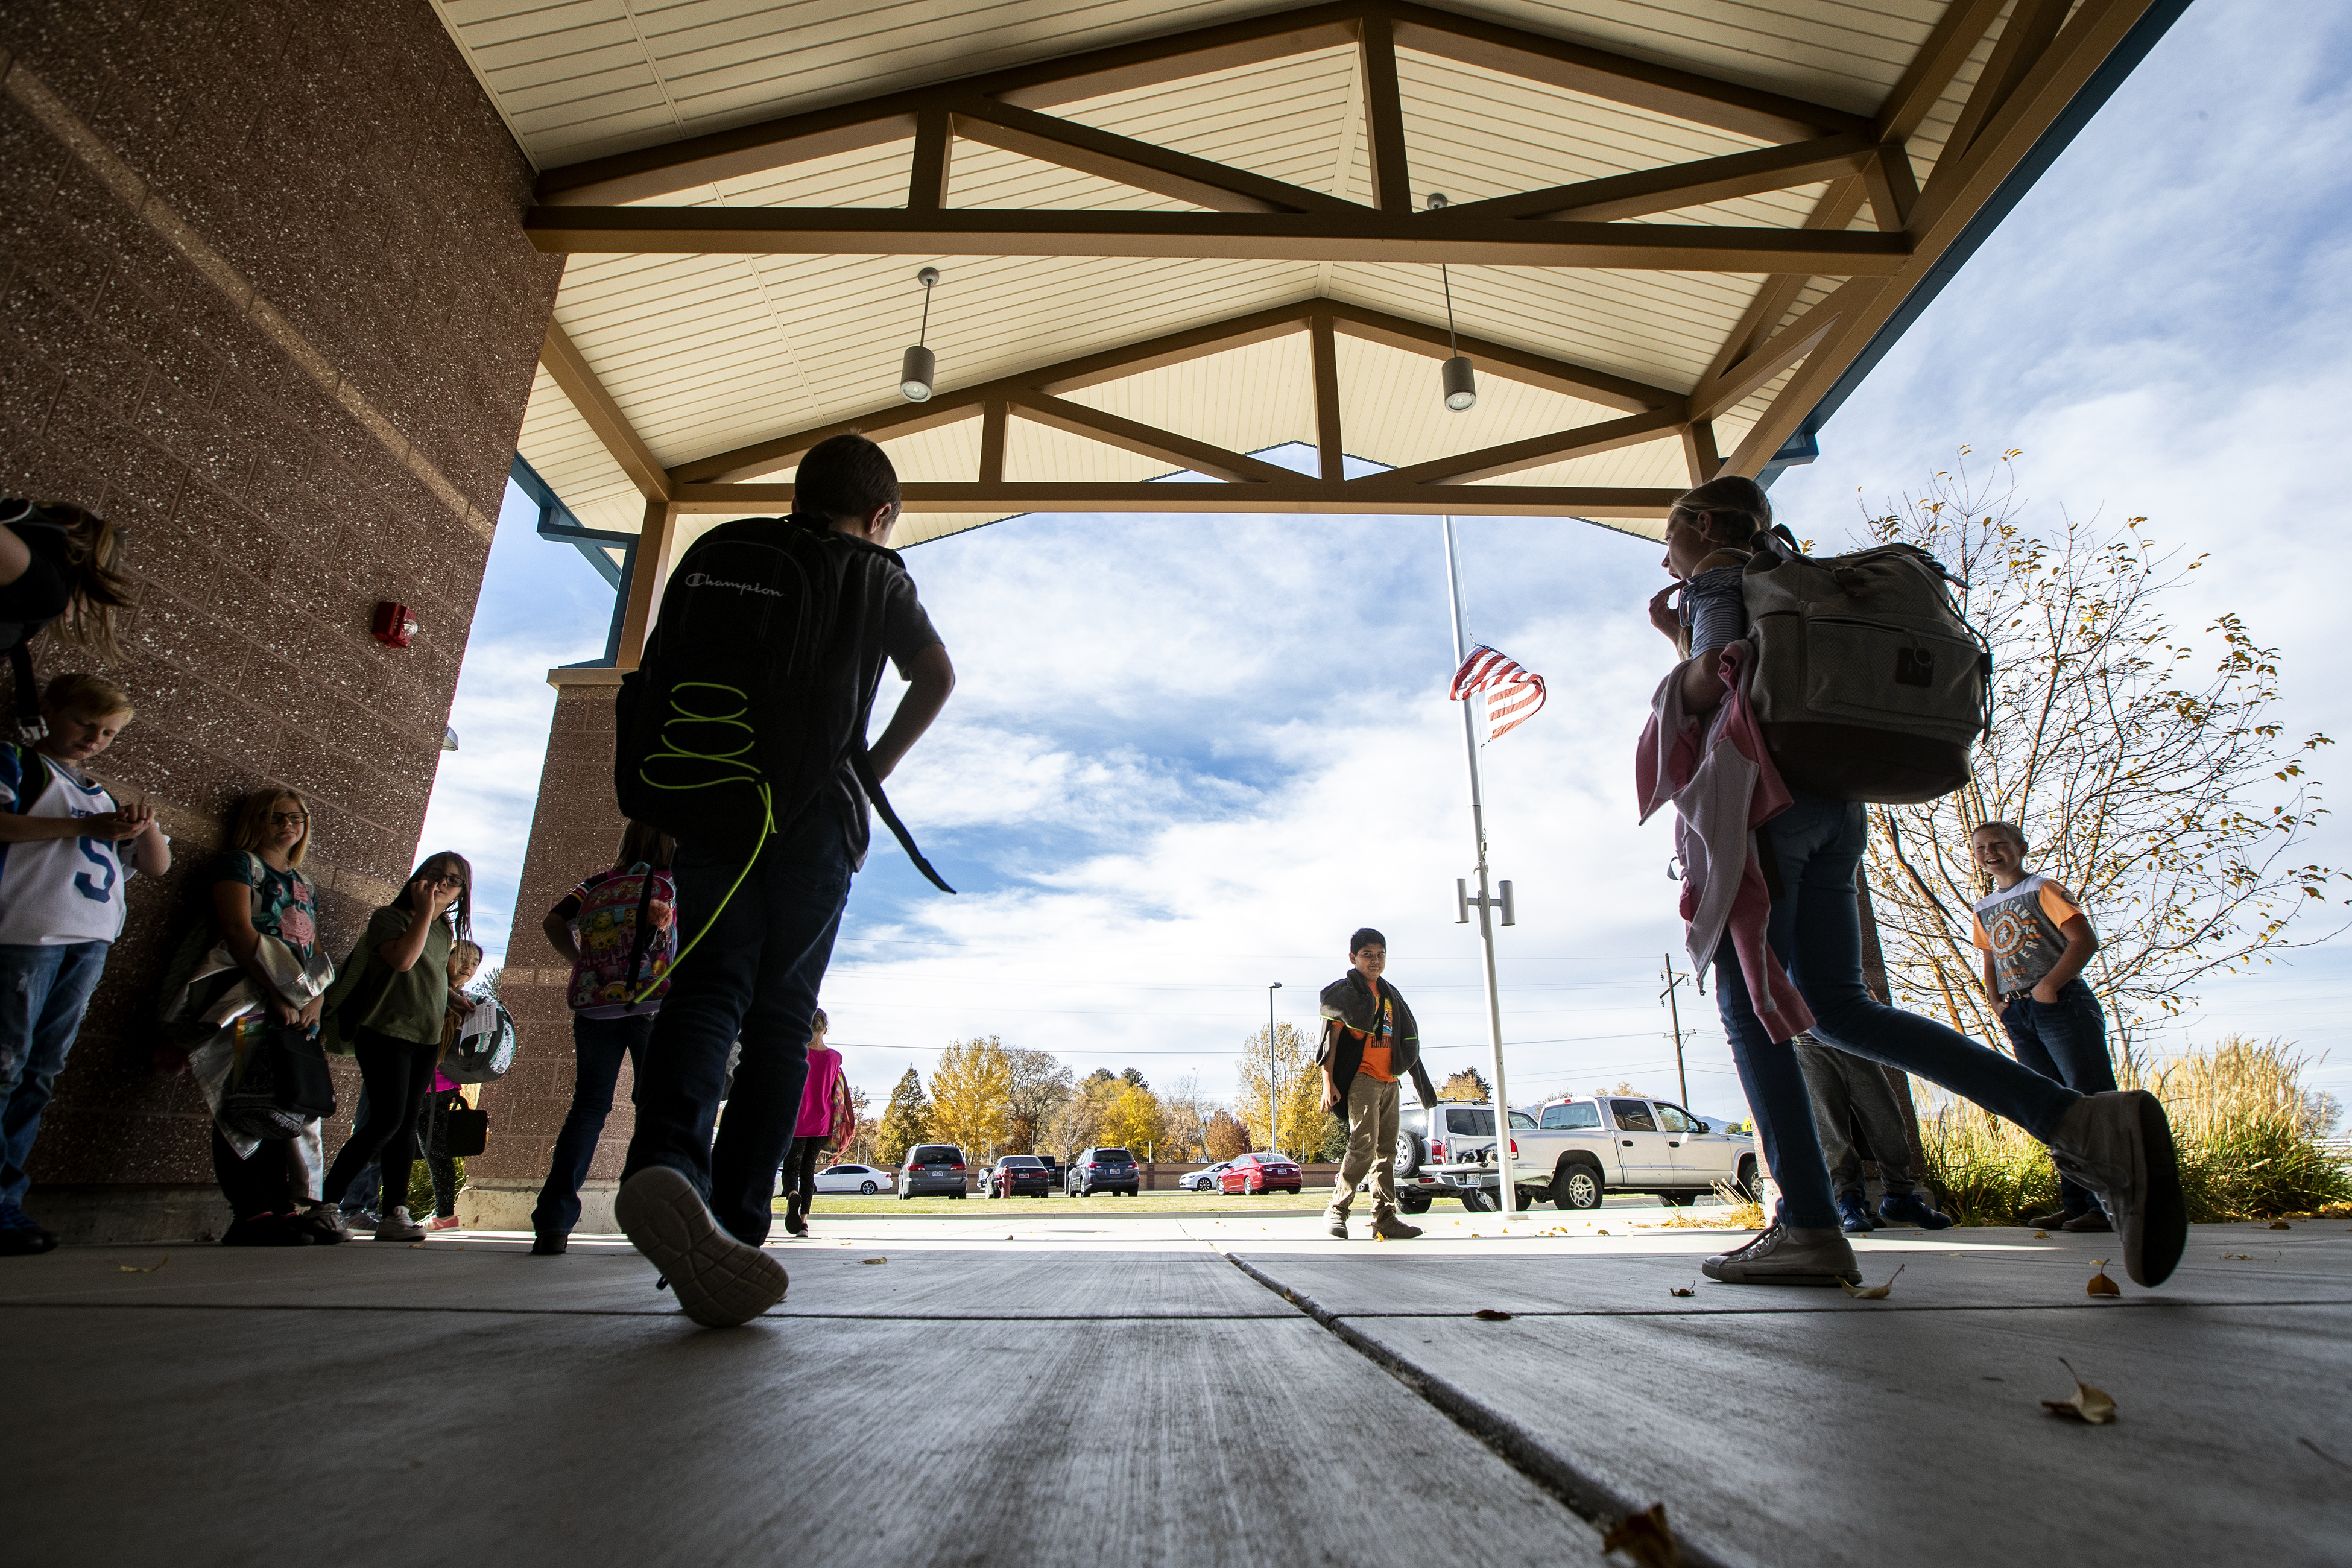 Students at Beaver School District's Belknap Elementary School leave school at the end of the day. Belknap is one of the highest performing elementary schools in Utah and is a Title 1 school, in Beaver on Monday, Oct. 29, 2018.